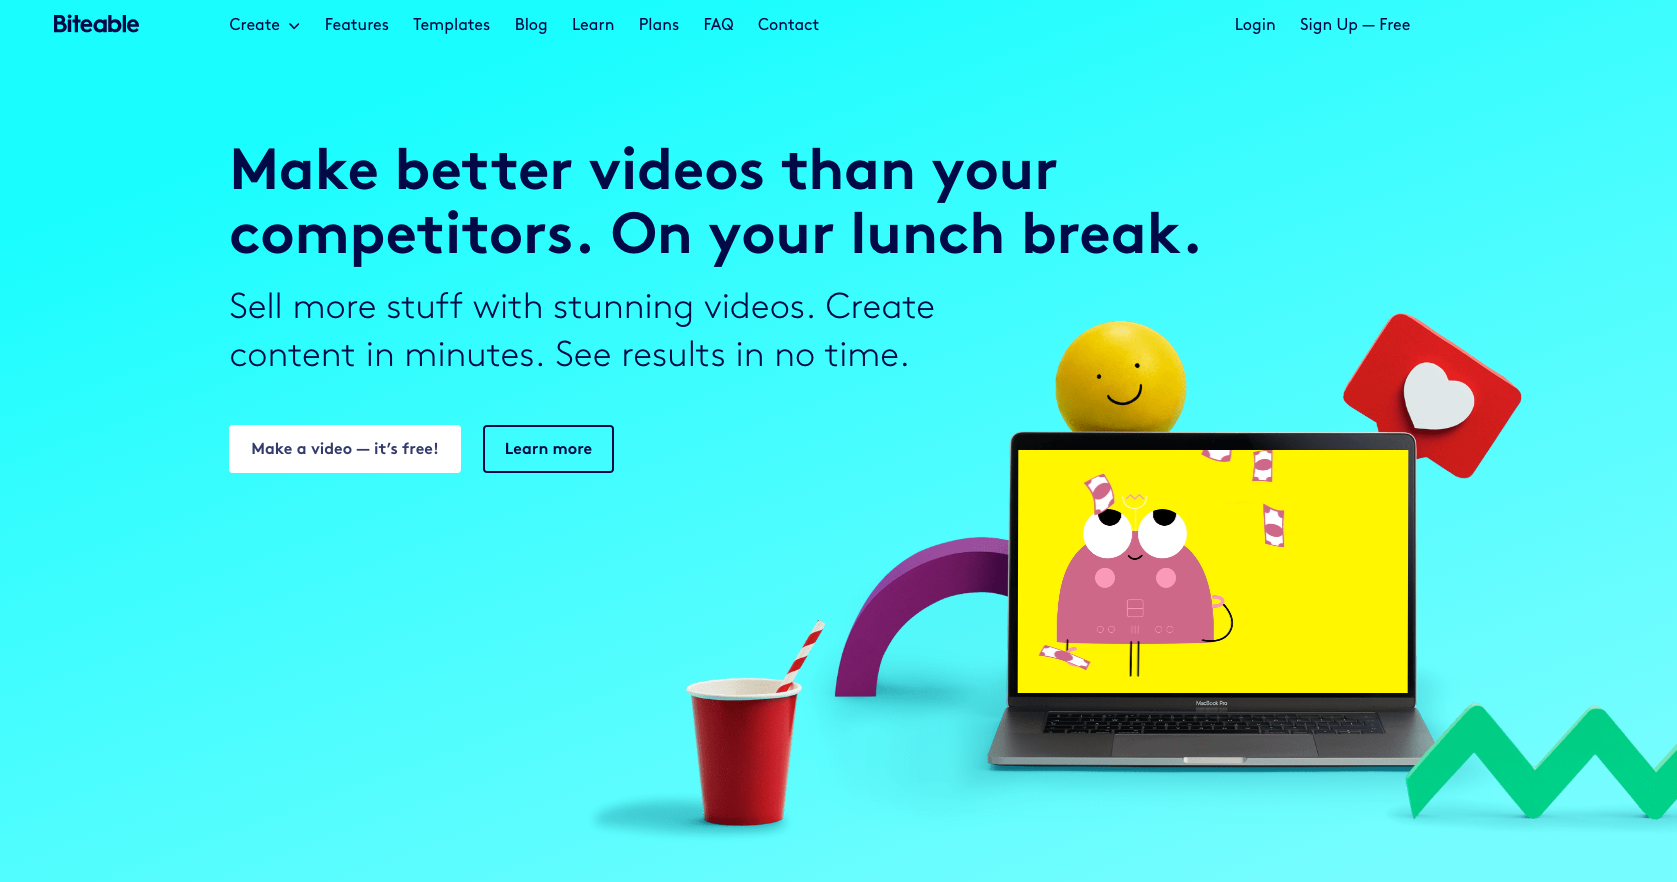 Biteable-content-creation-tool-video